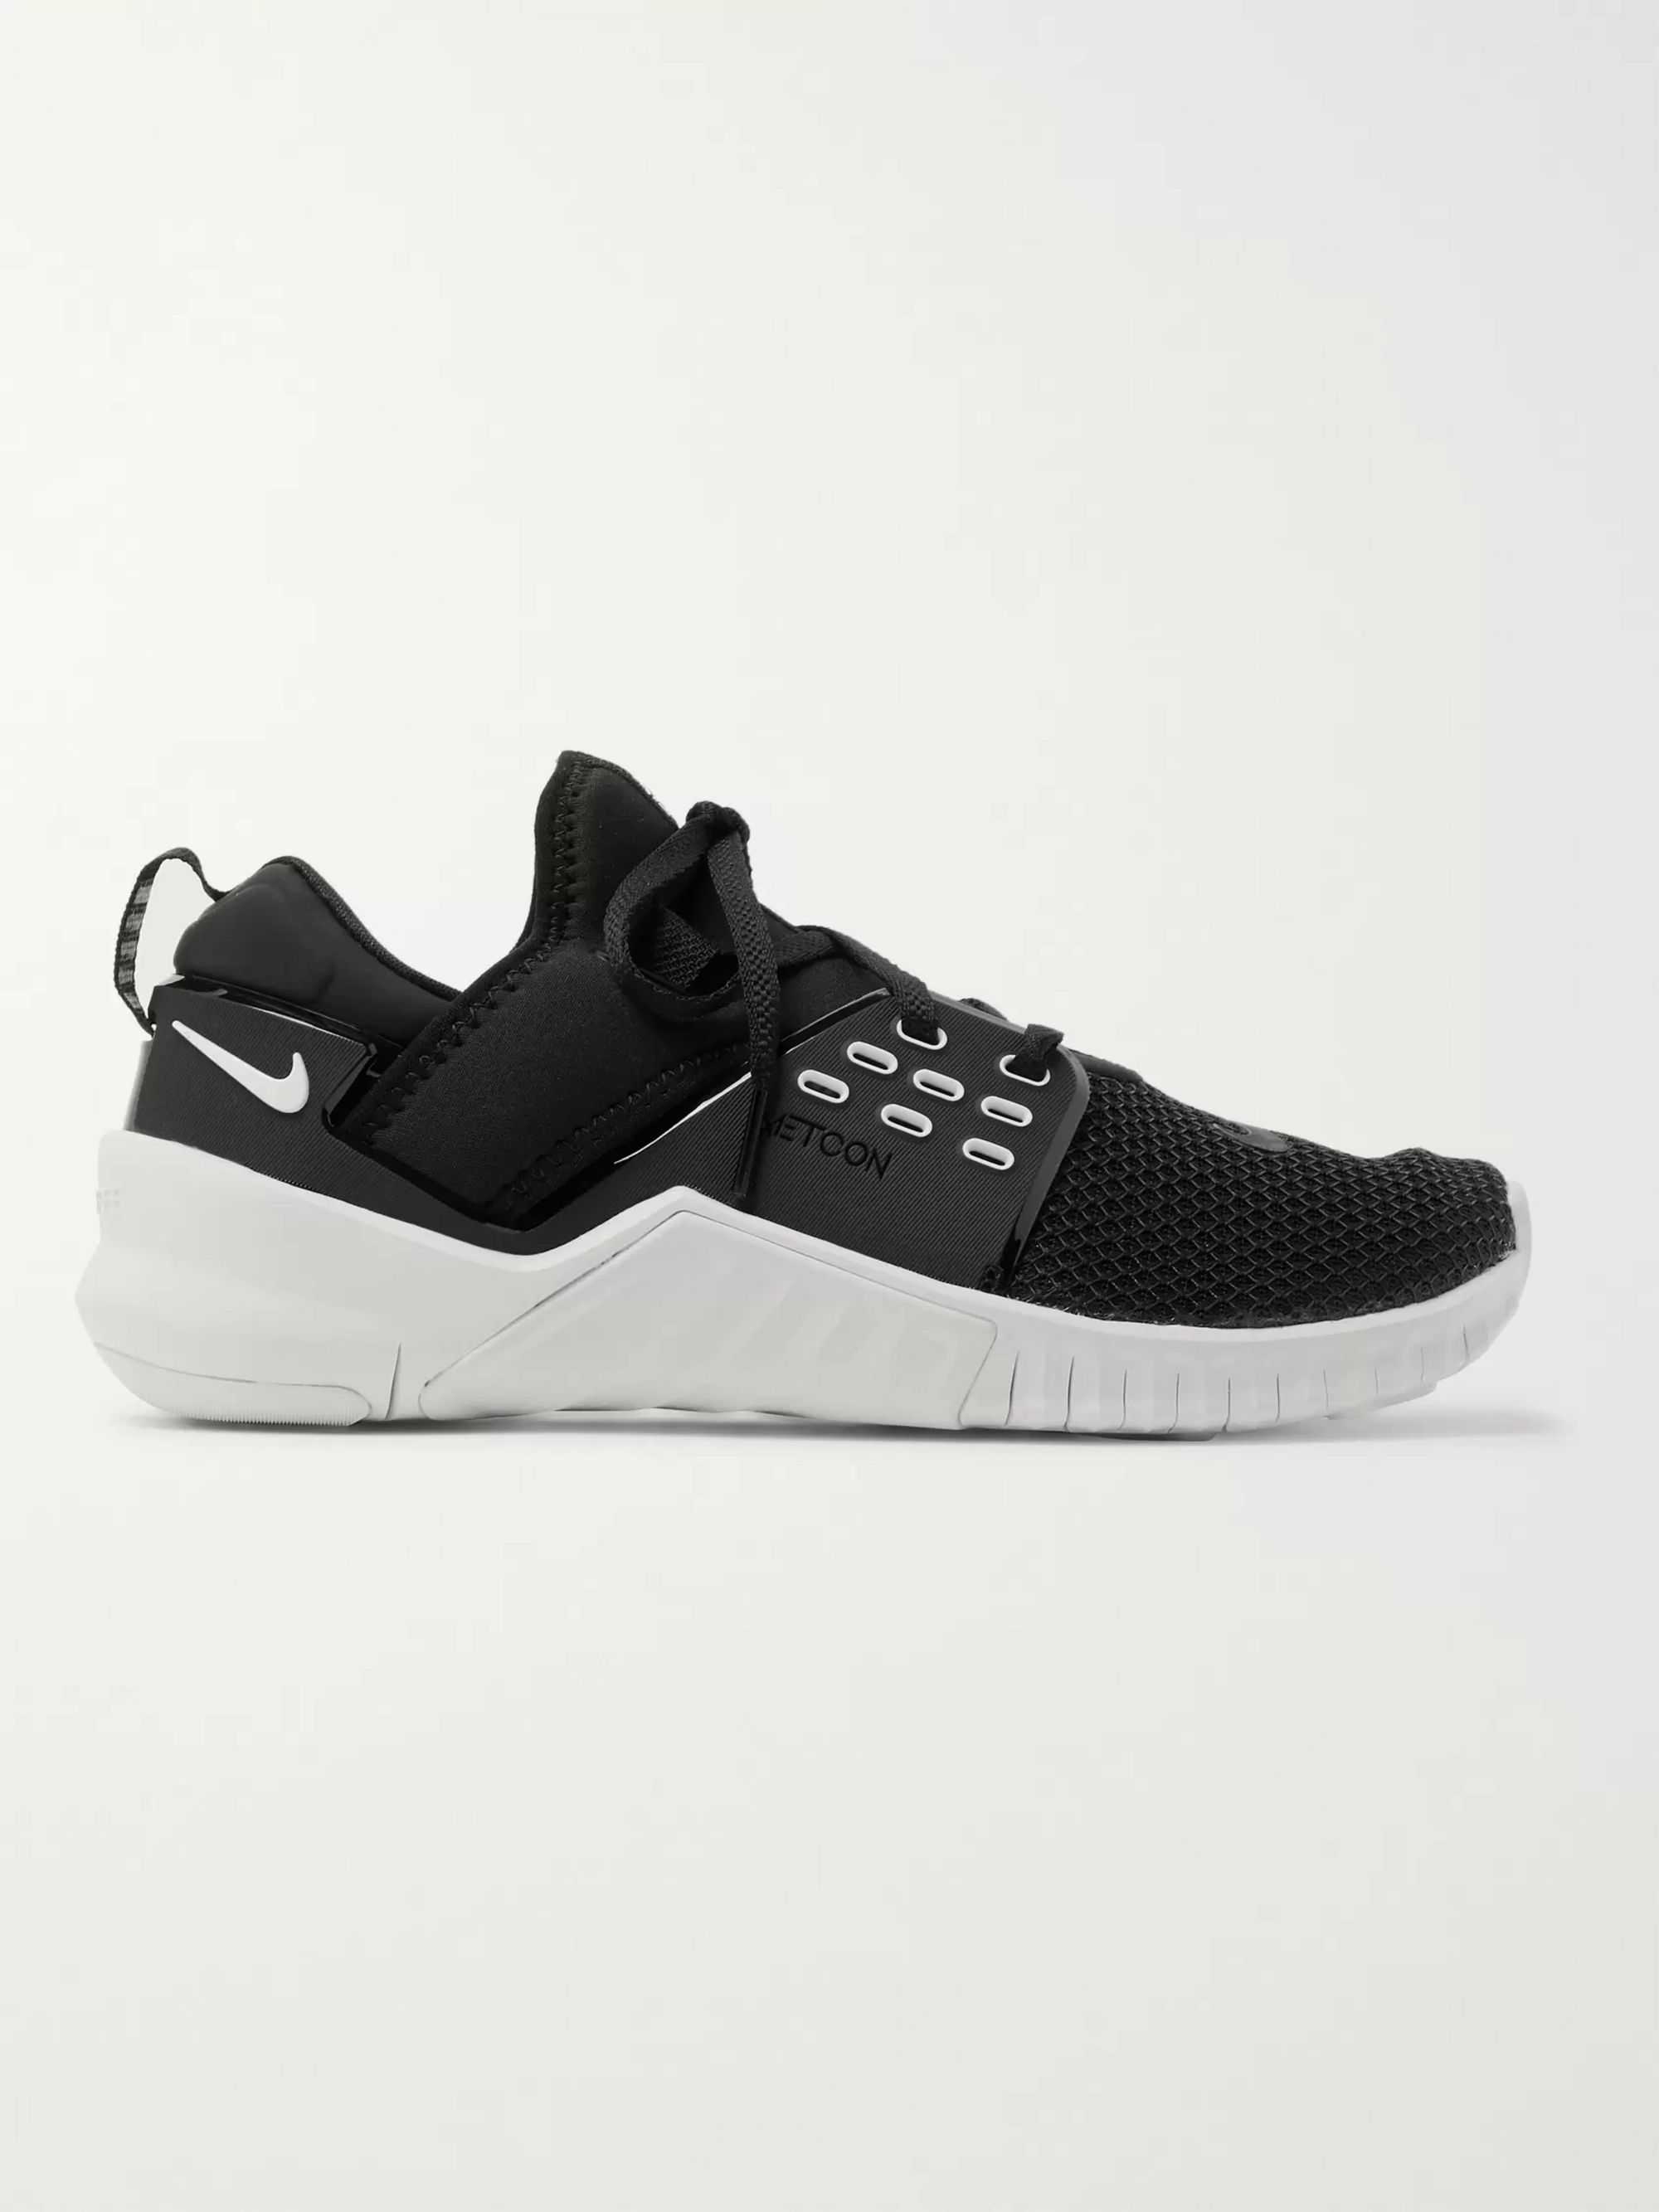 Metcon 2 Free Mesh and Neoprene Sneakers